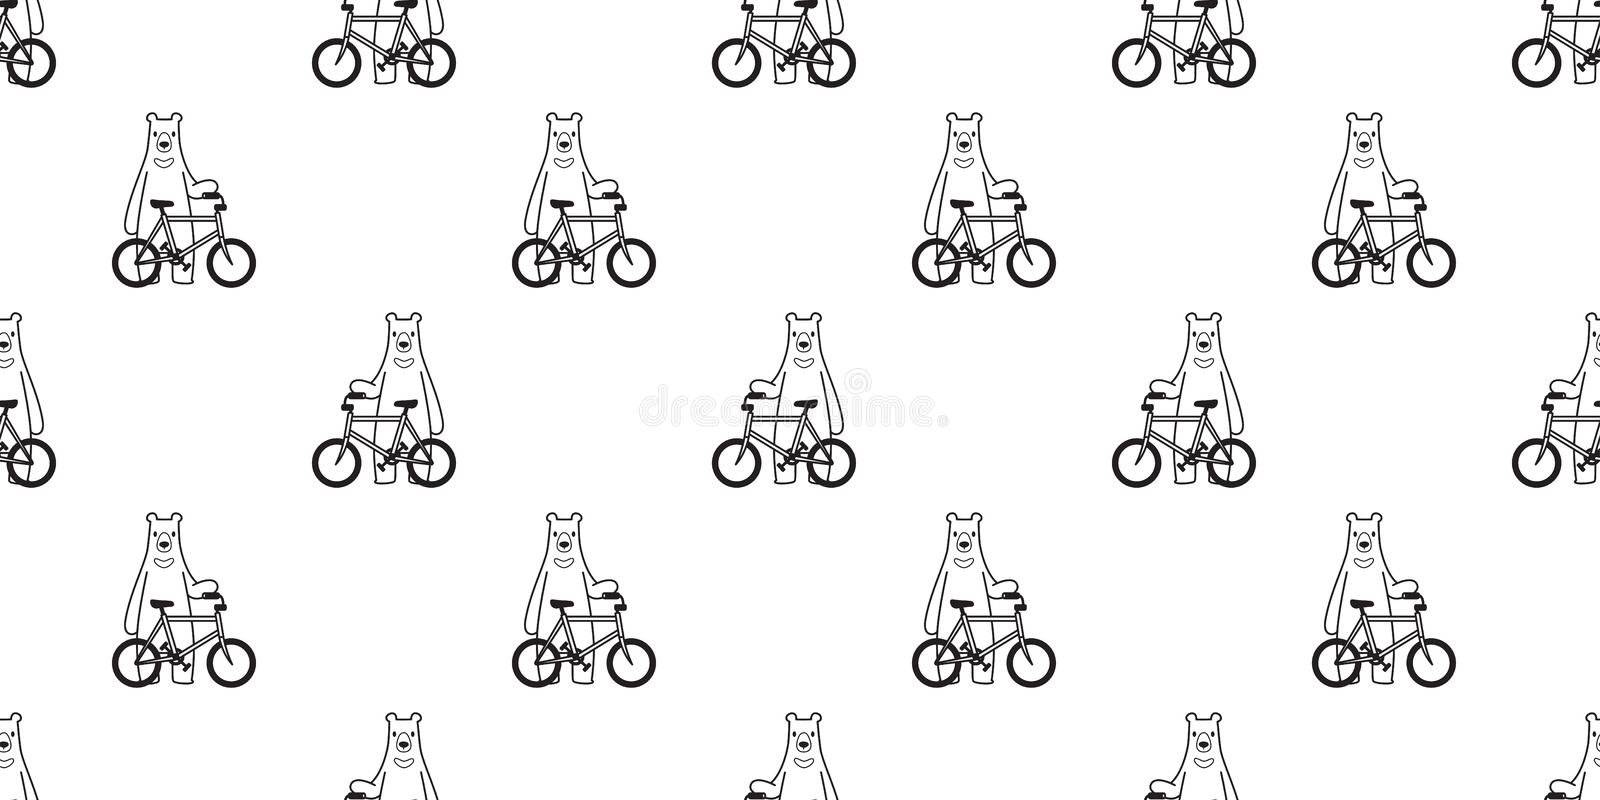 Bear seamless pattern vector polar bear bicycle riding cycling cartoon scarf isolated illustration tile background repeat wallpape royalty free illustration